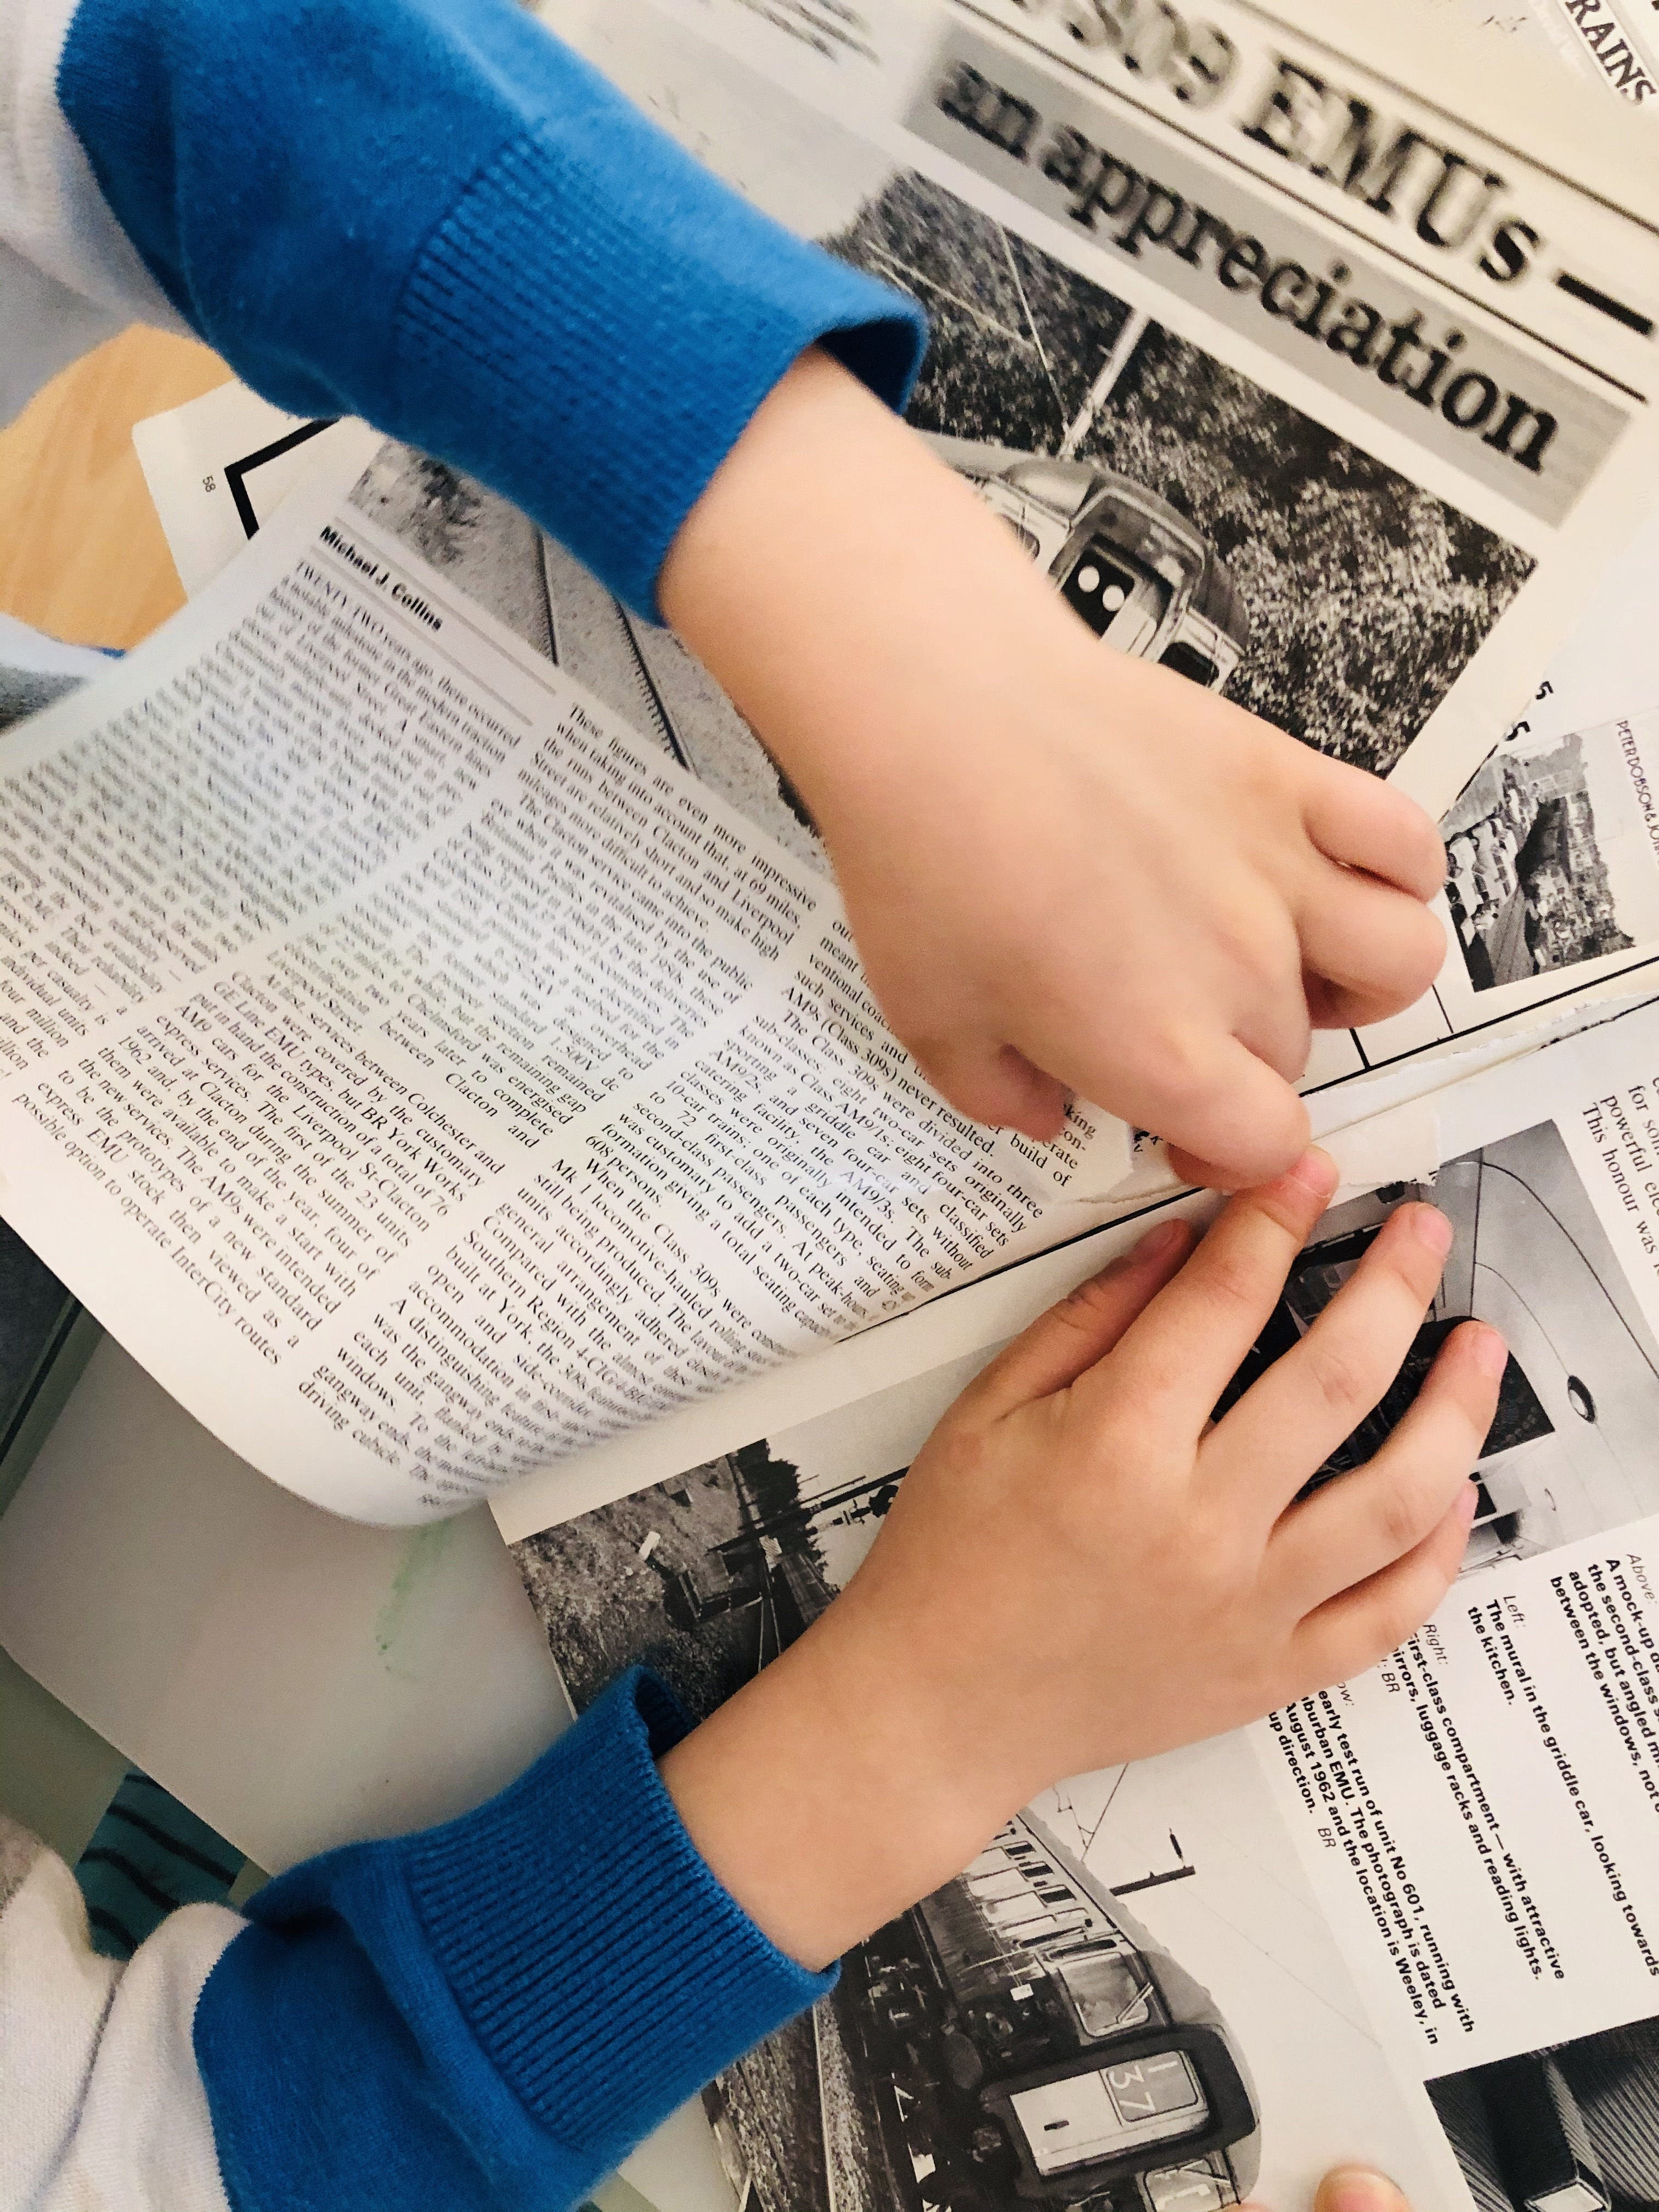 kid ripping pages out of an old magazine